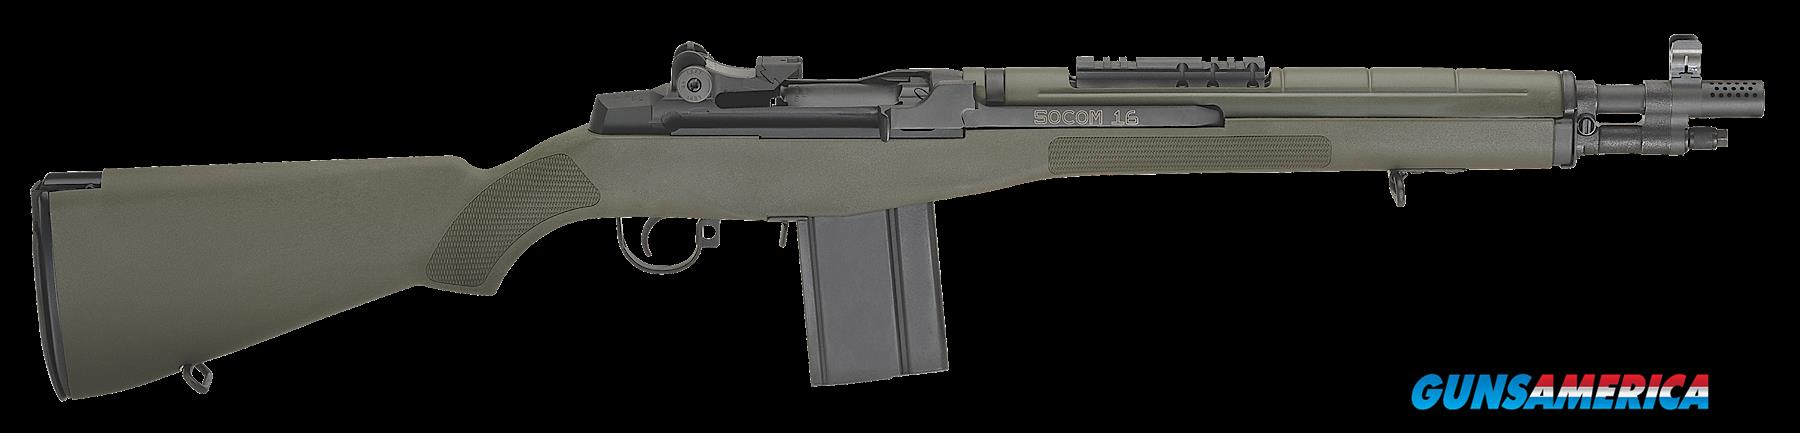 "Springfield Armory AA9625 M1A SOCOM 16 Semi-Automatic 308 Winchester/7.62 NATO 16.25"" 10+1 Synthetic  Guns > Rifles > S Misc Rifles"